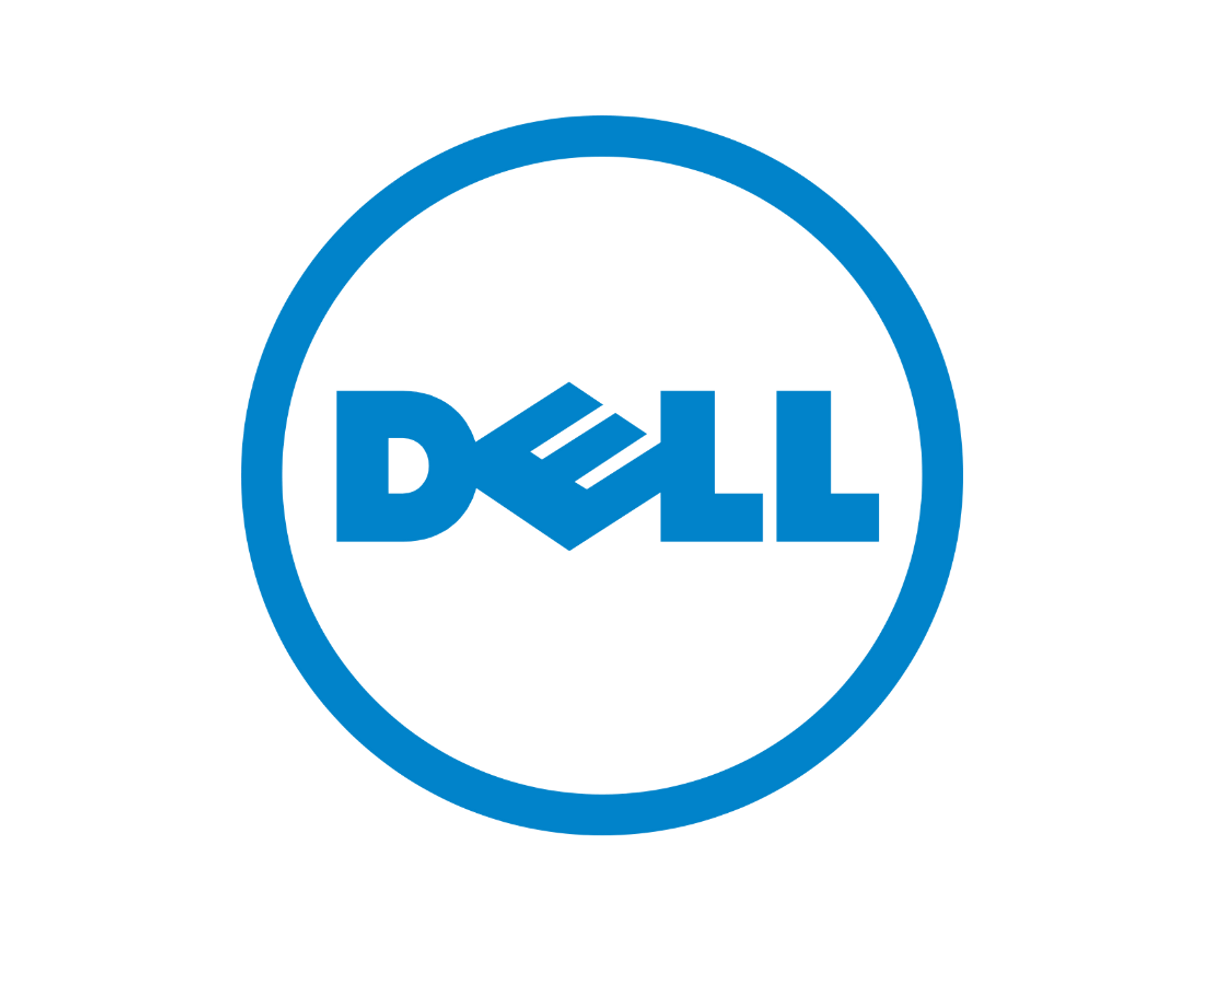 Dell It Security